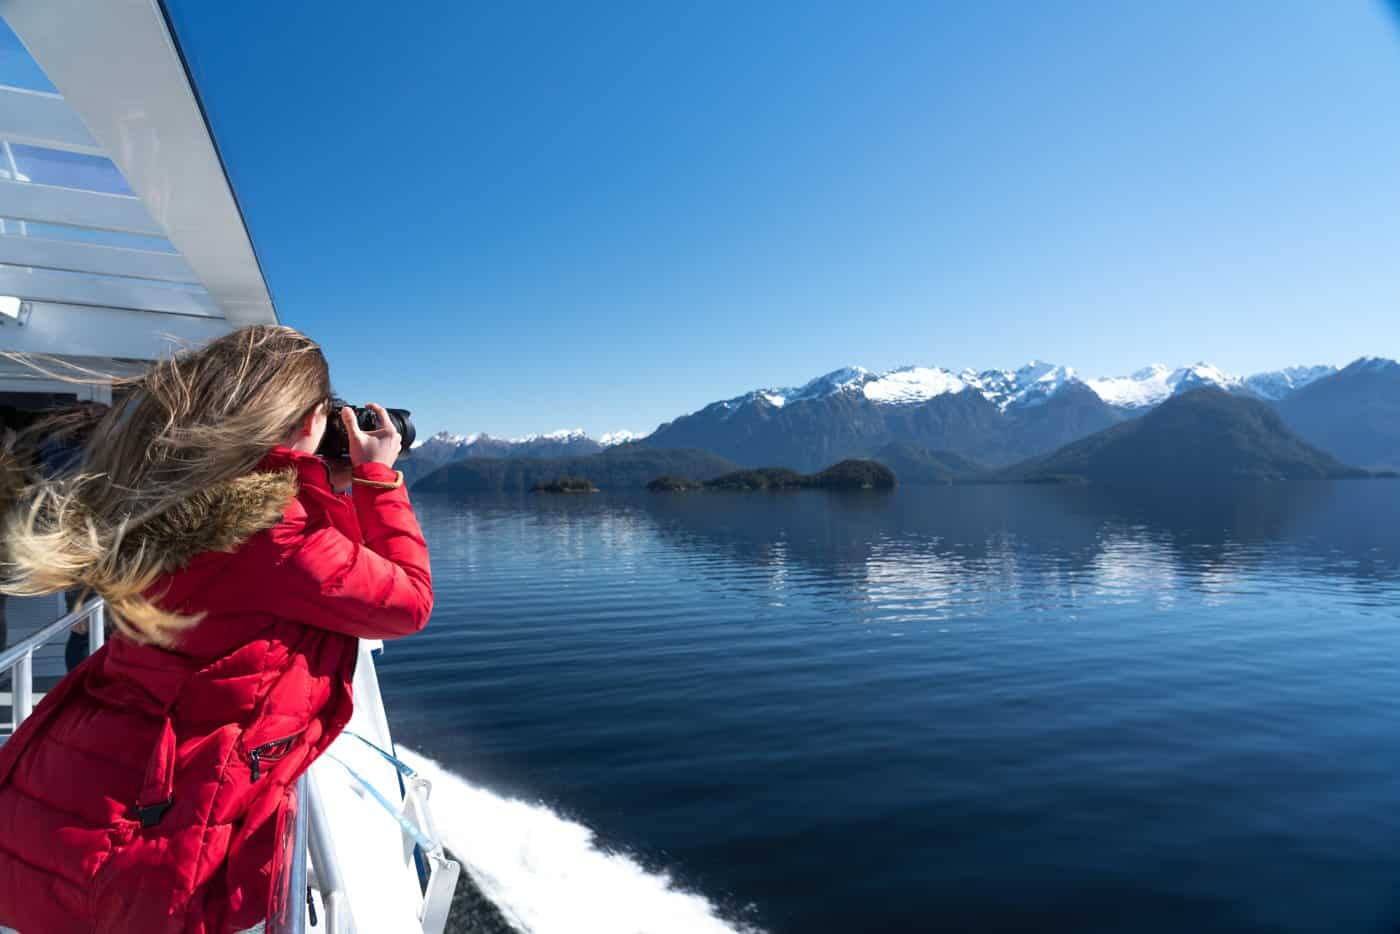 Photographing the snow-capped mountains of Manapouri.